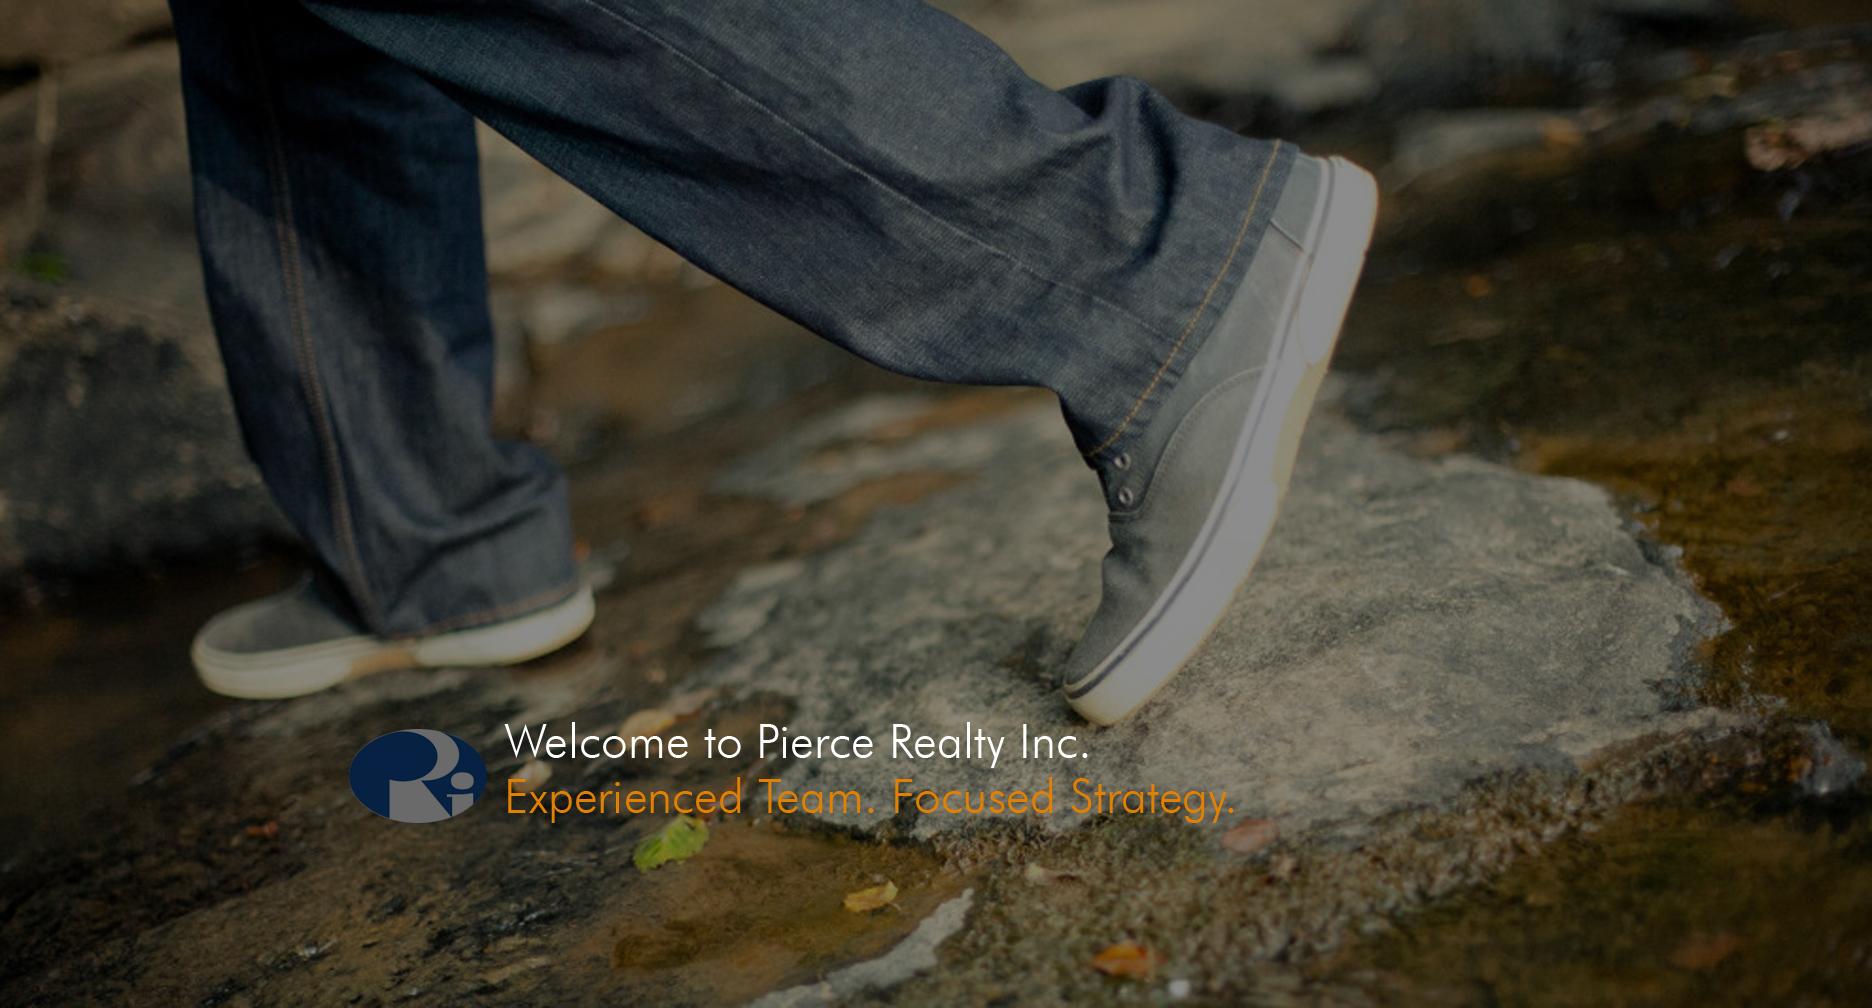 Welcome to Pierce Realty, Inc. Experienced Team. Focused Strategy.